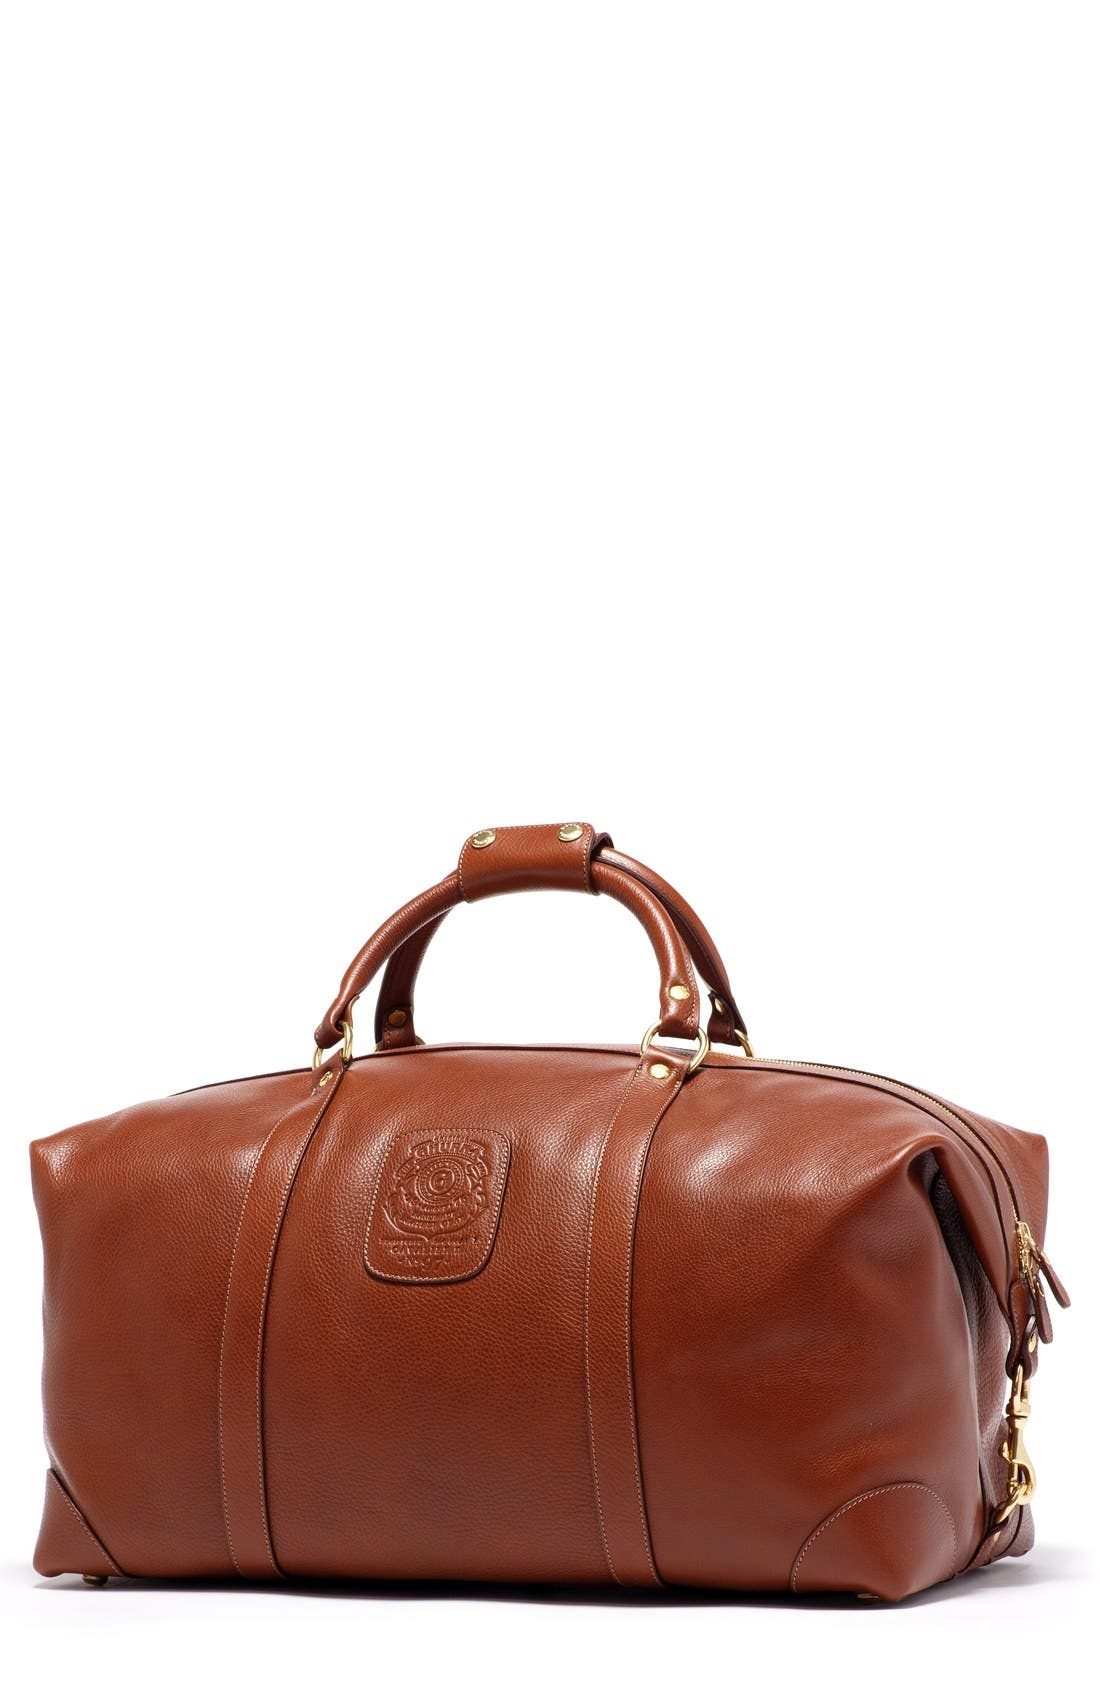 Main Image - Ghurka Cavalier II Leather Duffel Bag